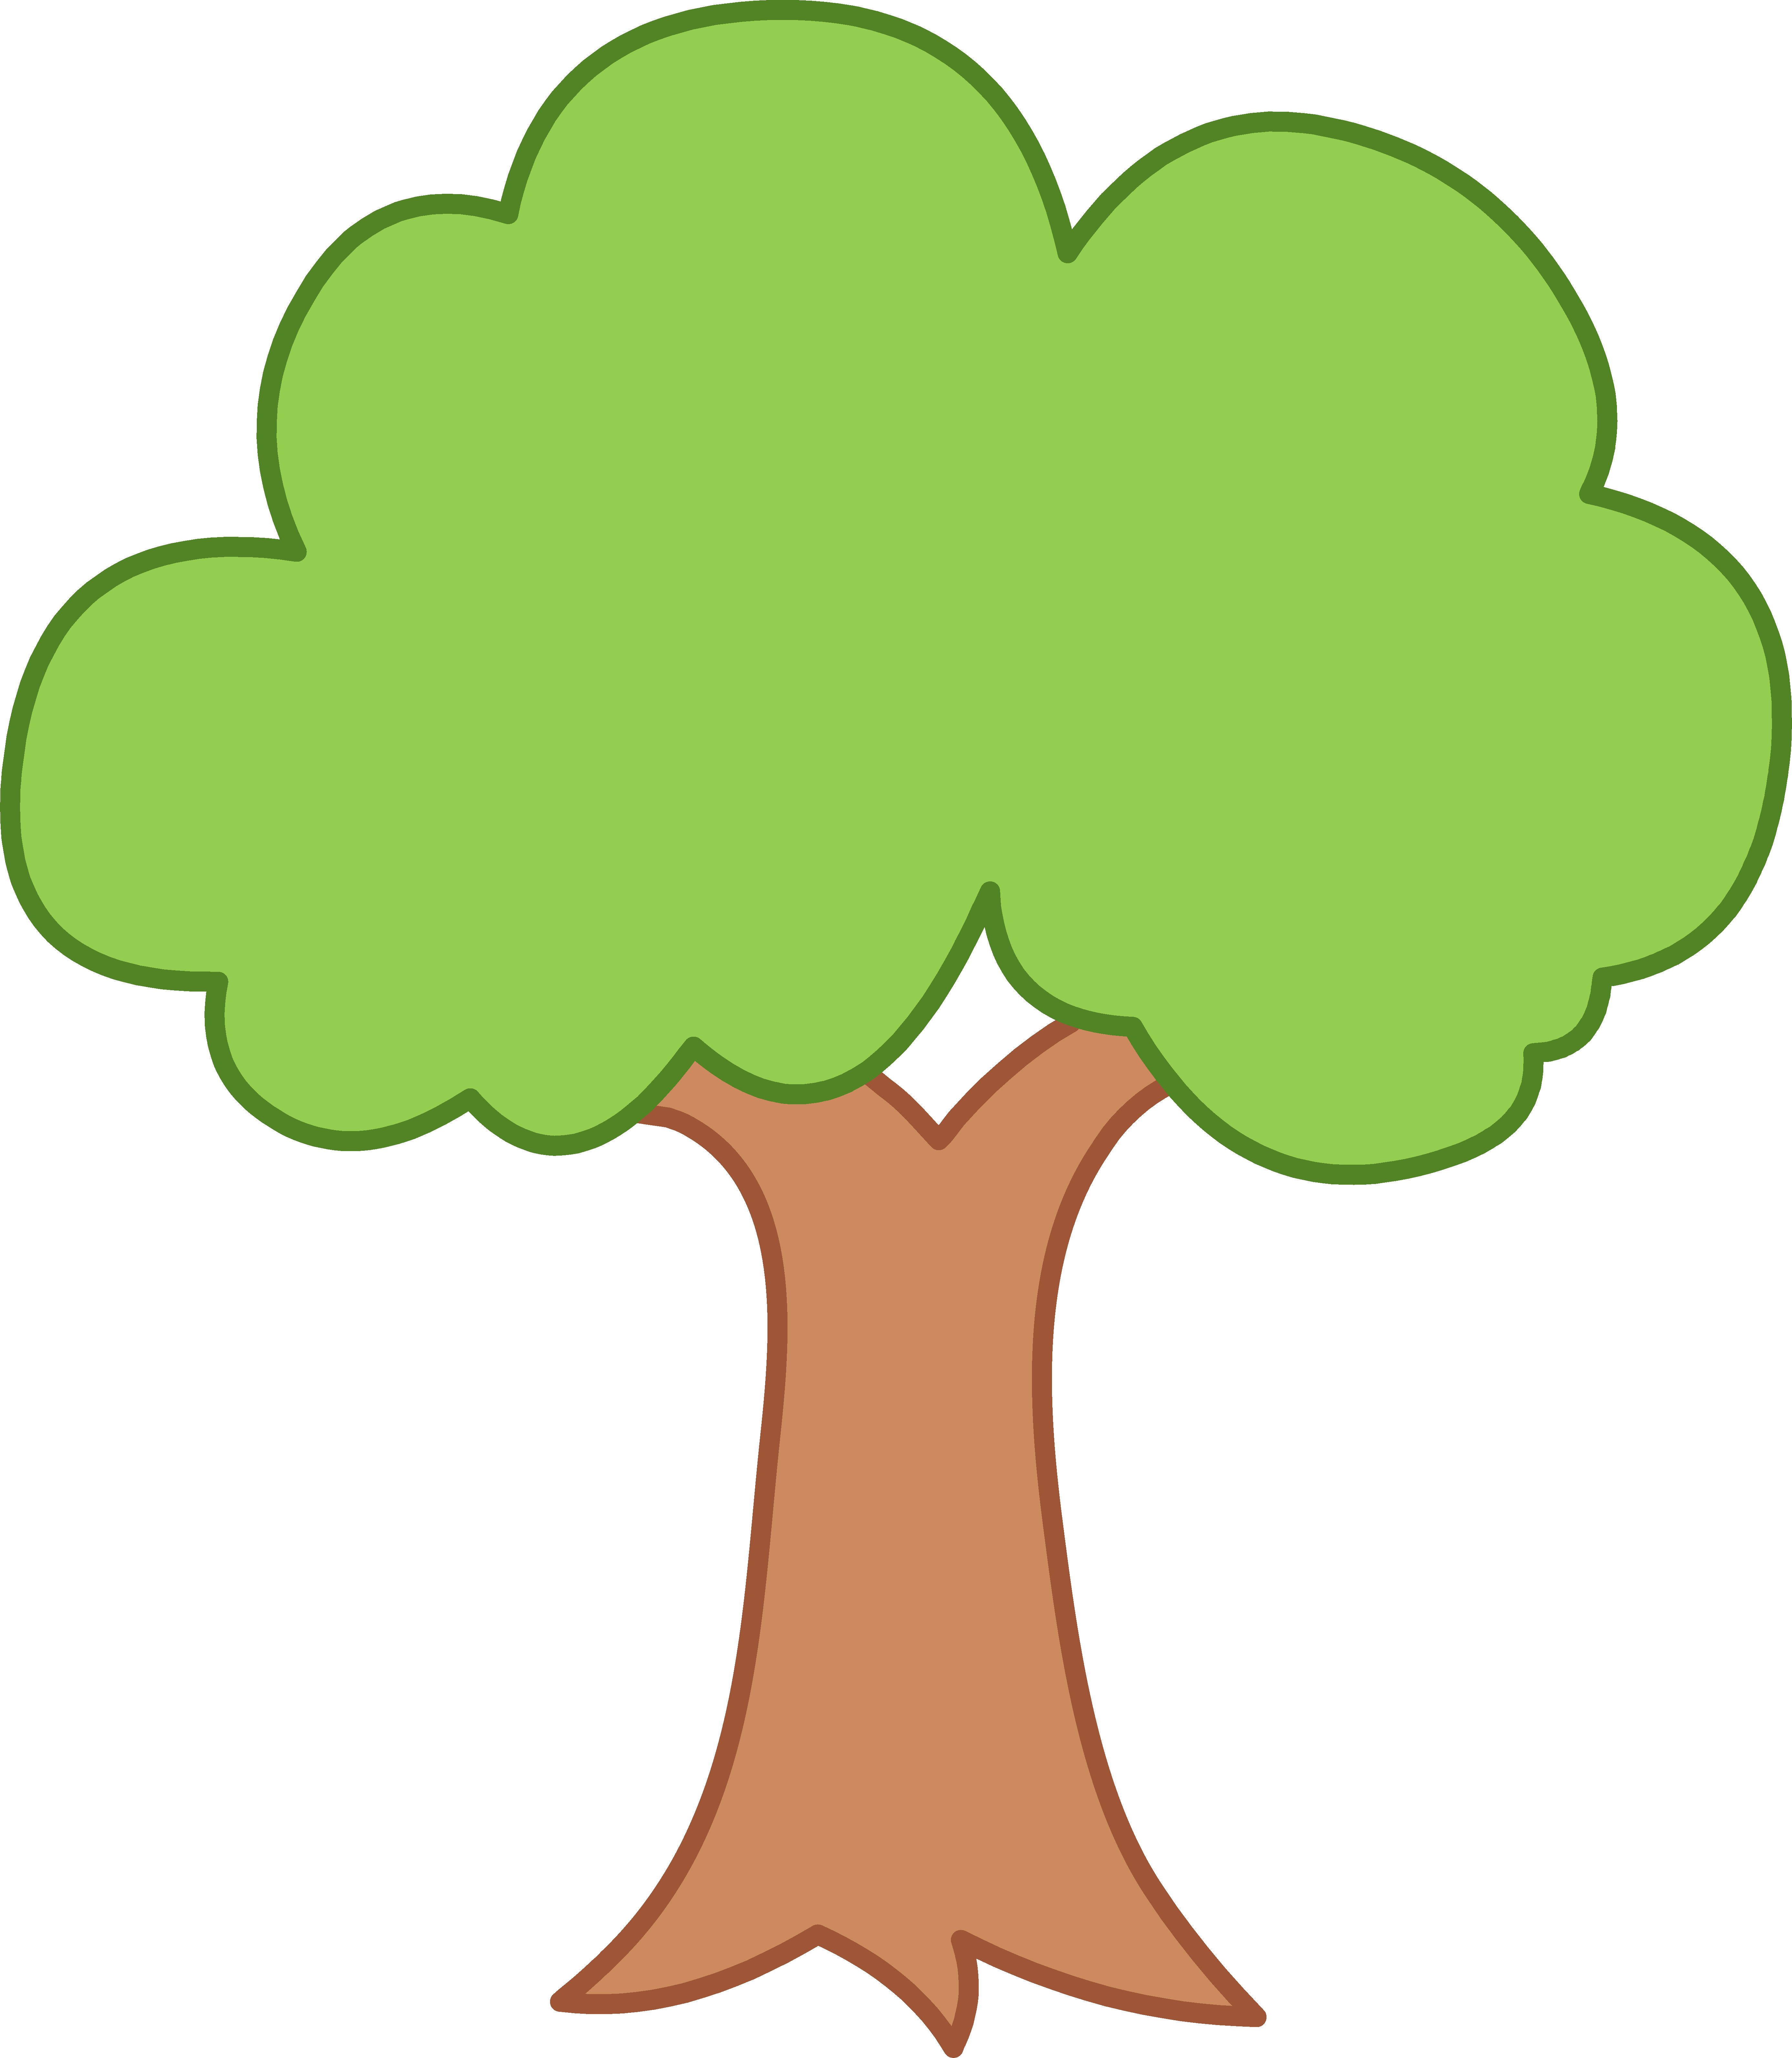 Fall apple trees clipart clipart library library 35 green tree clipart. | Clipart Panda - Free Clipart Images ... clipart library library